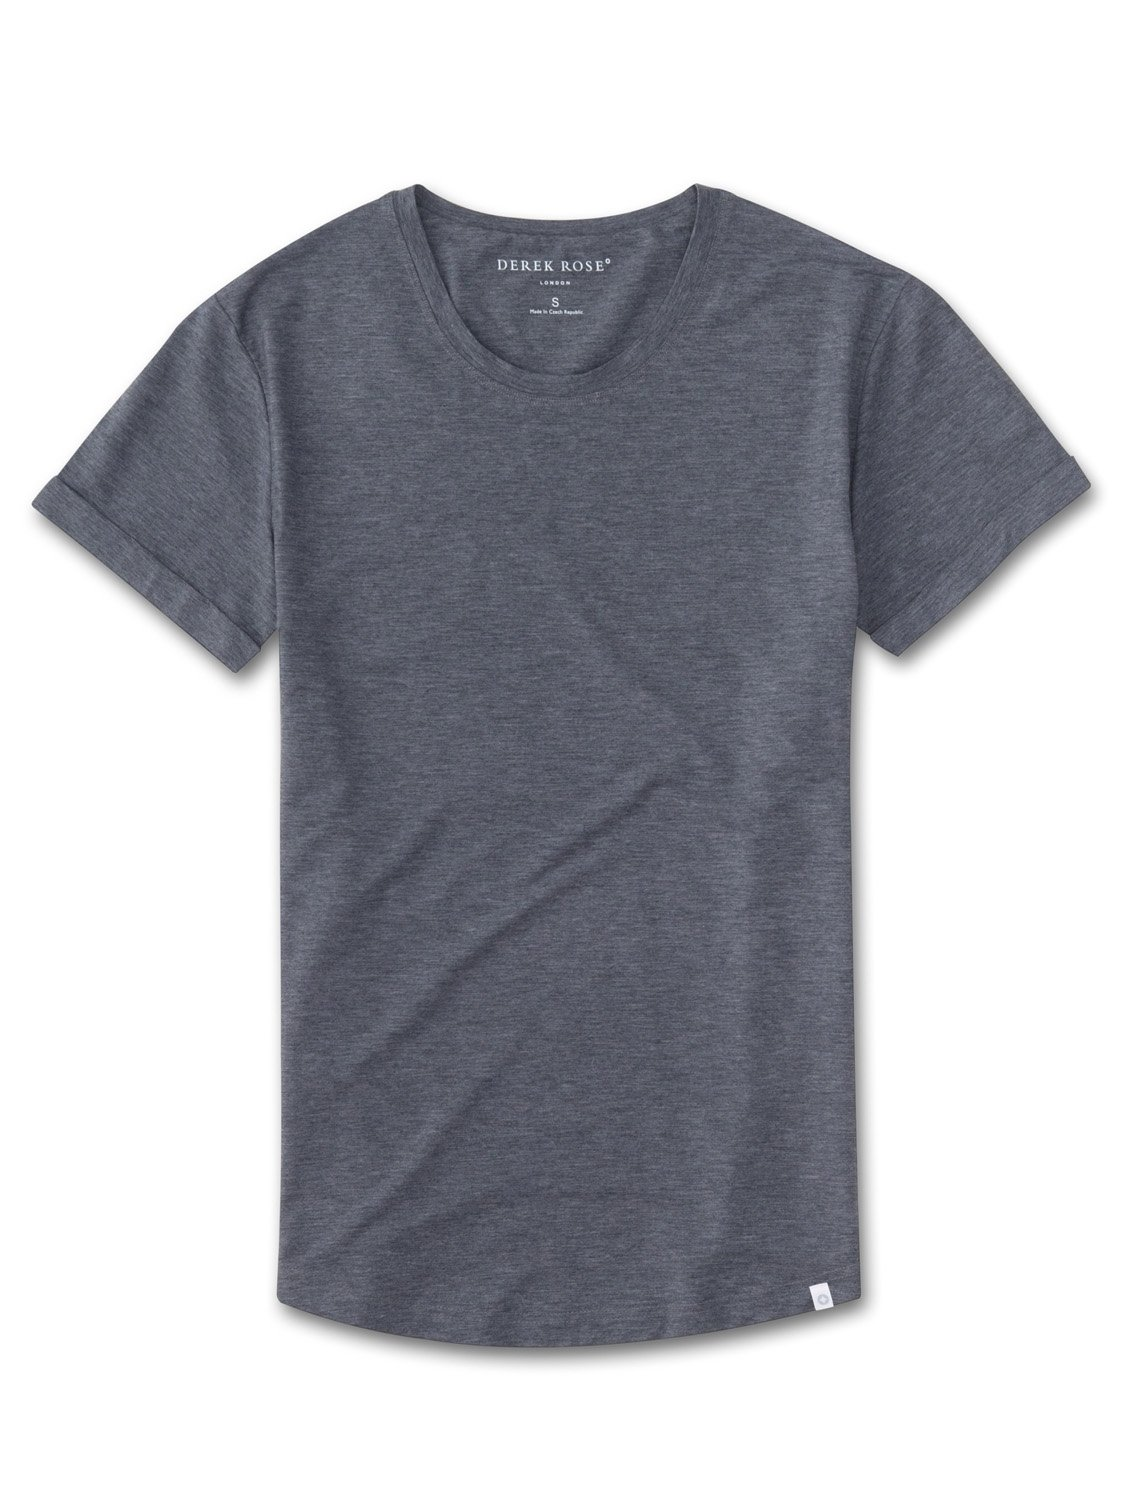 Women's Leisure T-Shirt Ethan 2 Micro Modal Stretch Charcoal